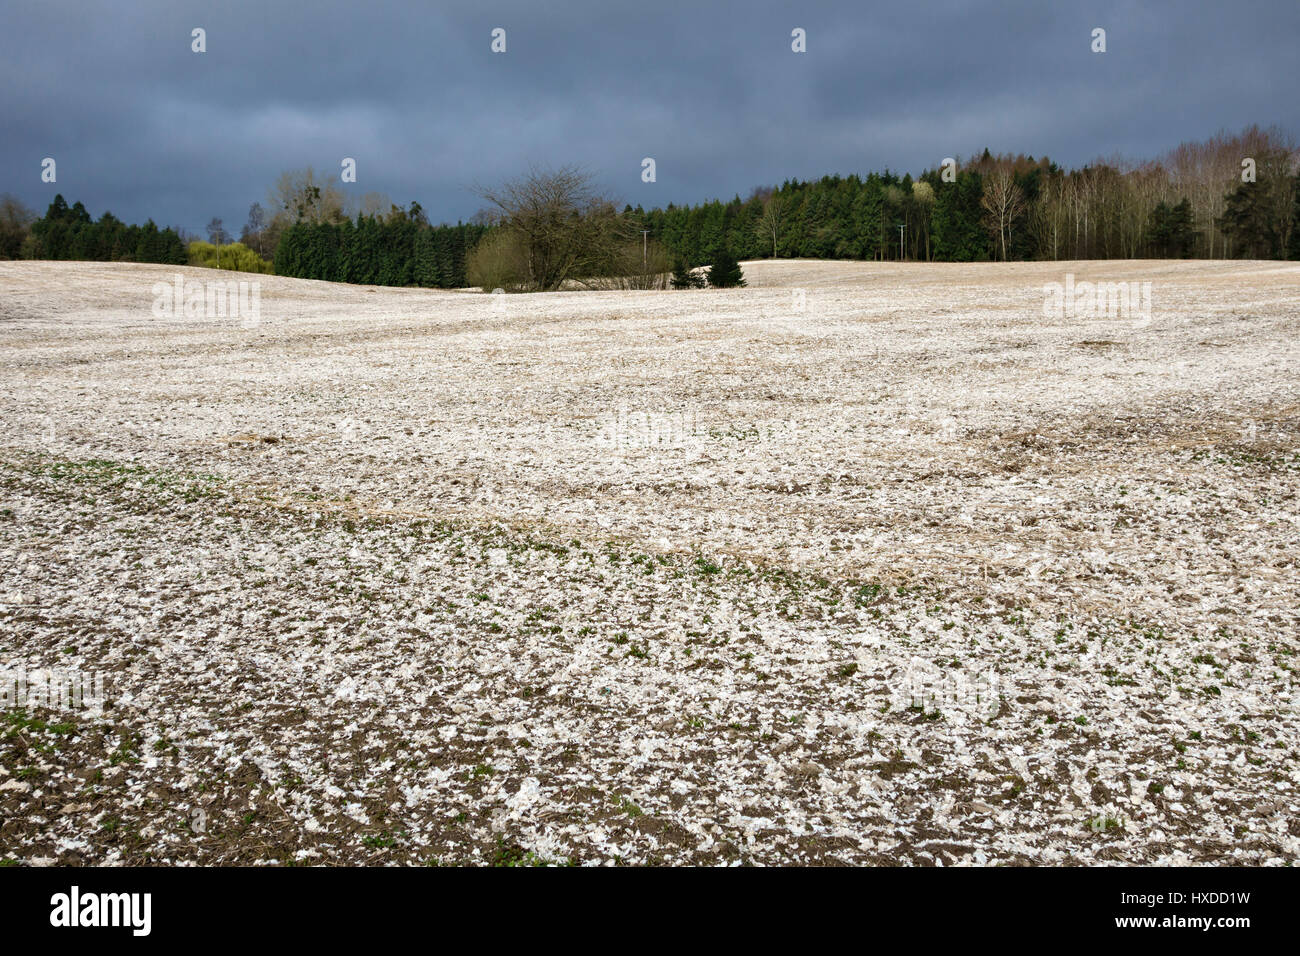 Paper pulp spread on fields as a mulch or soil conditioner, Herefordshire, UK Stock Photo